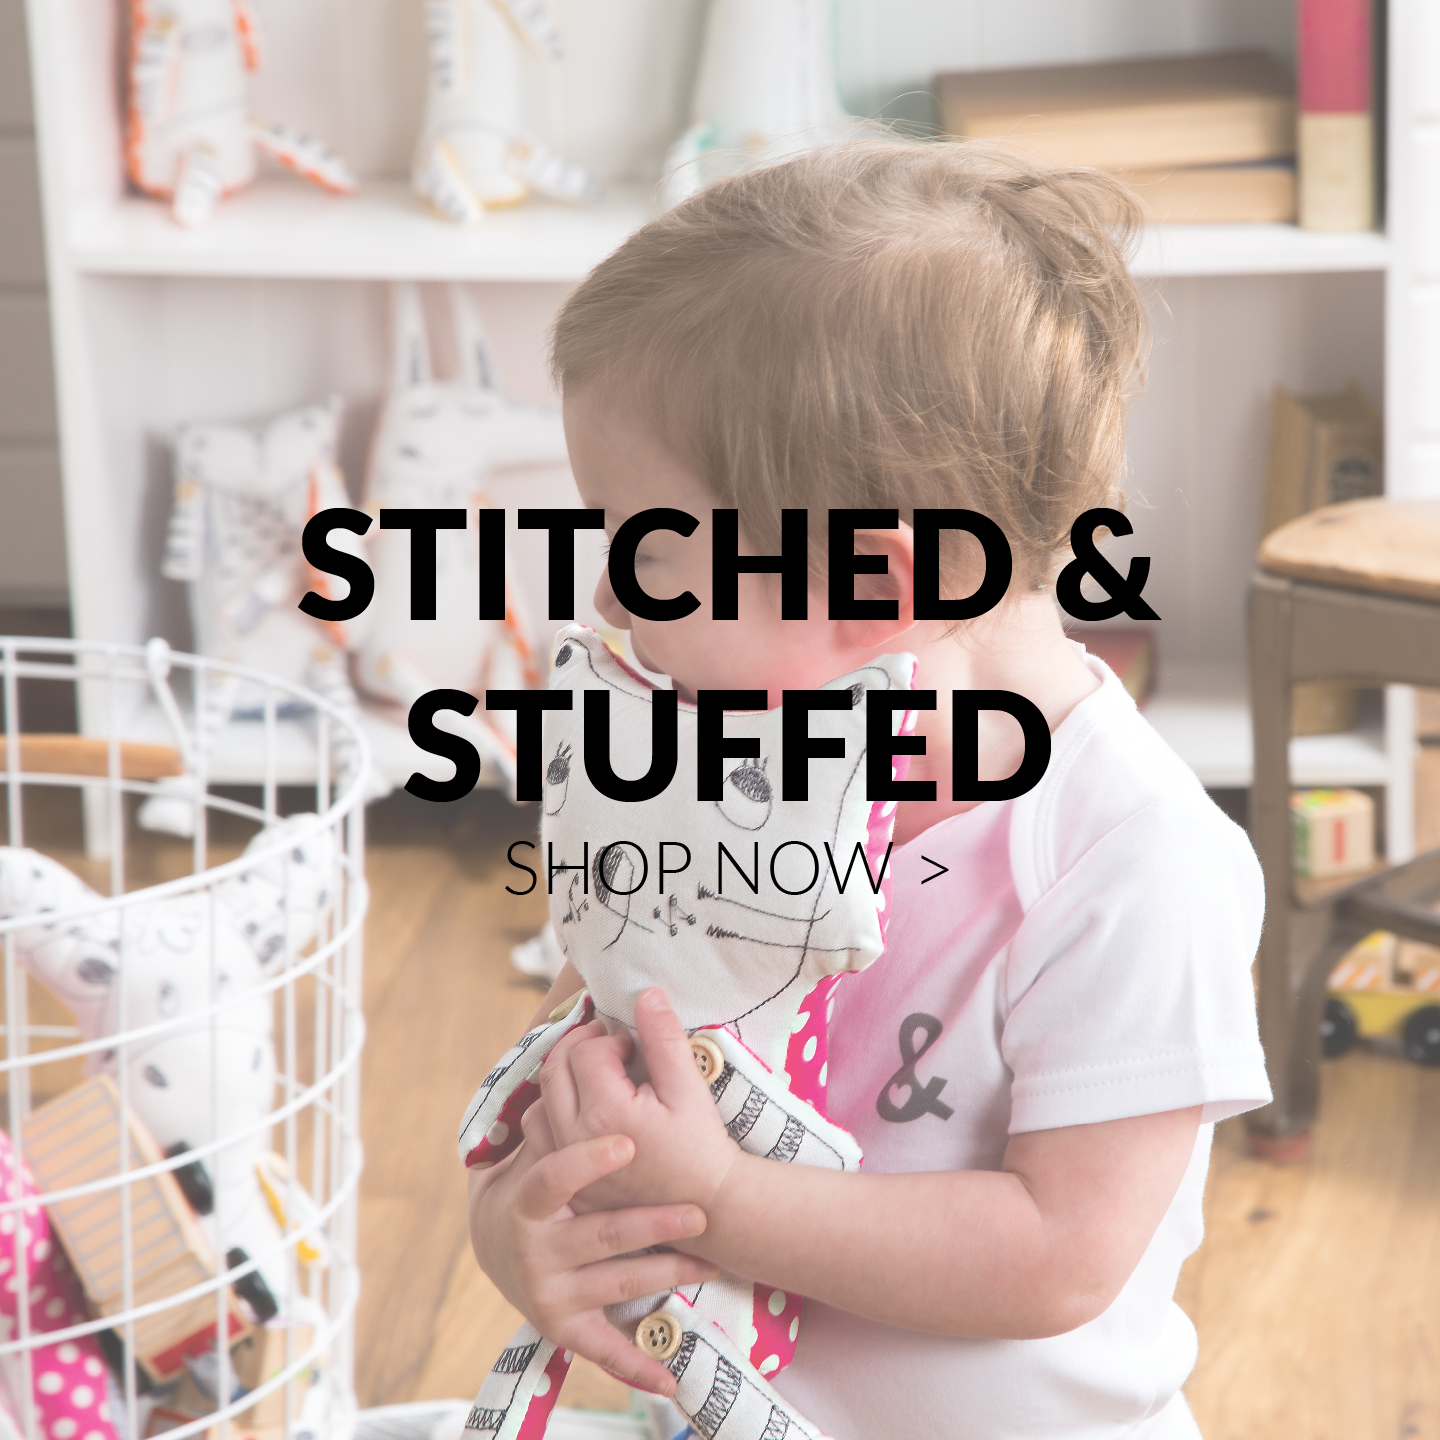 Stitched & Stuffed